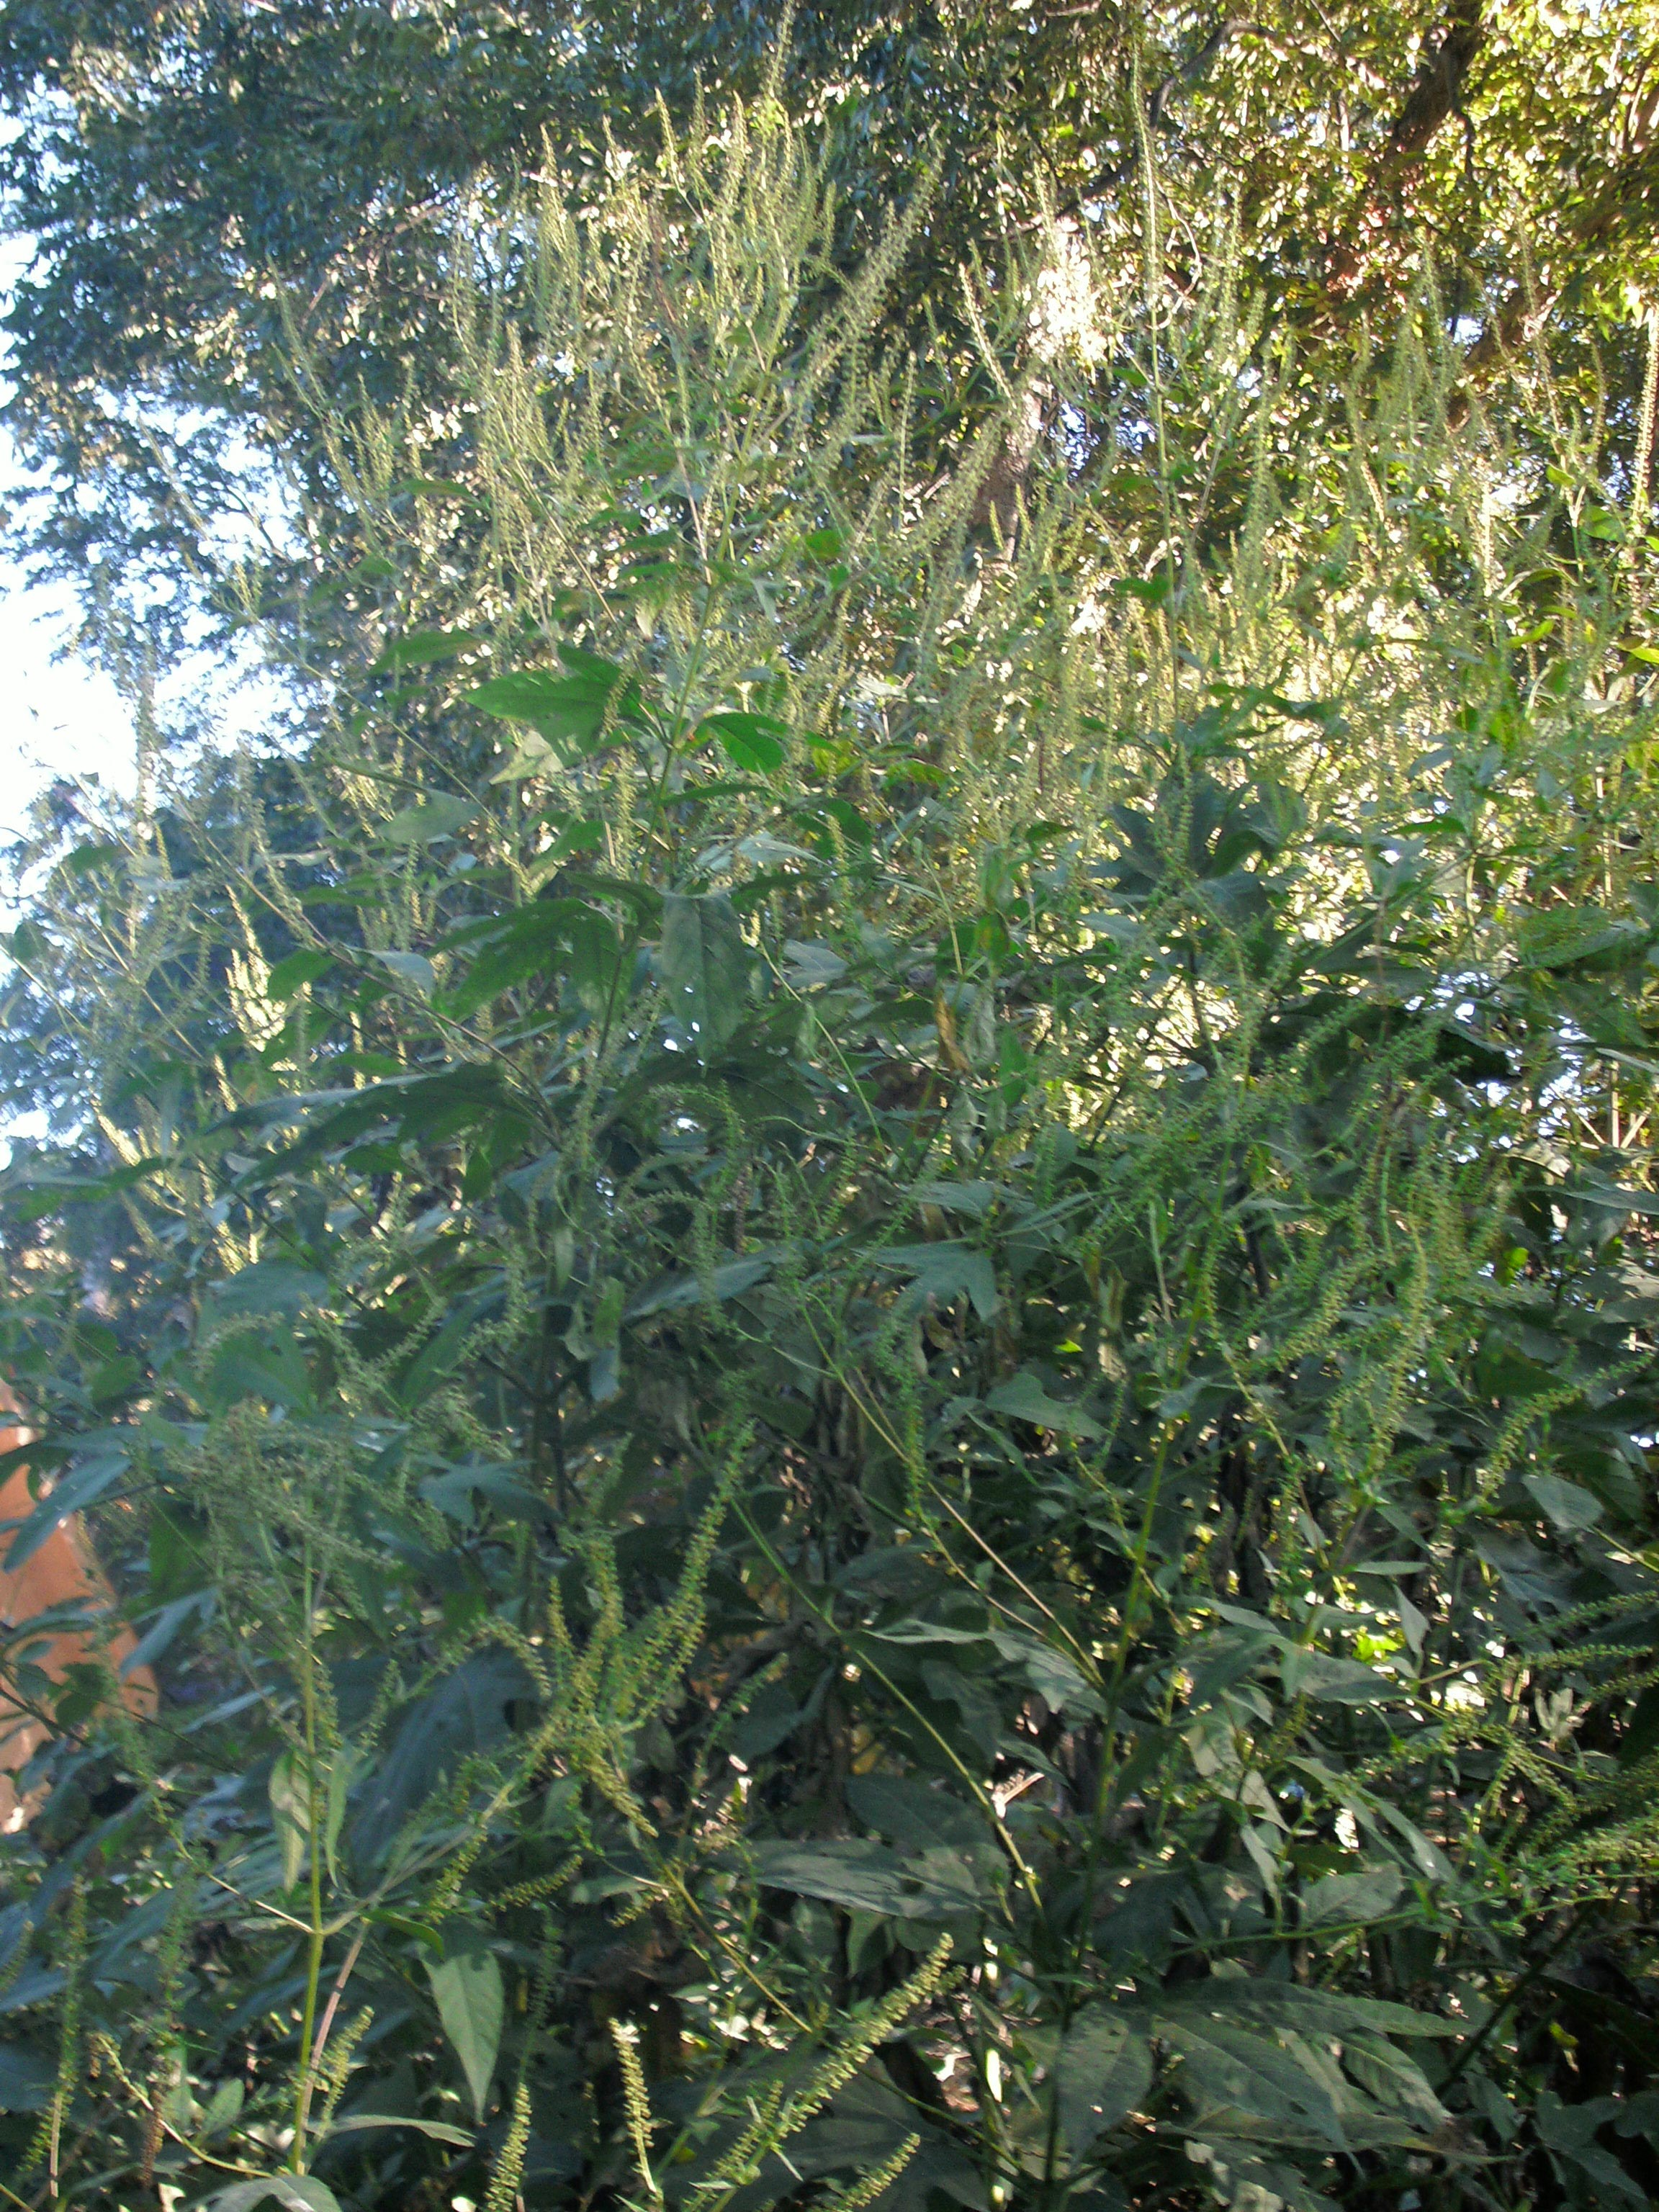 Giant Ragweed – Identification | Walter Reeves: The Georgia Gardener